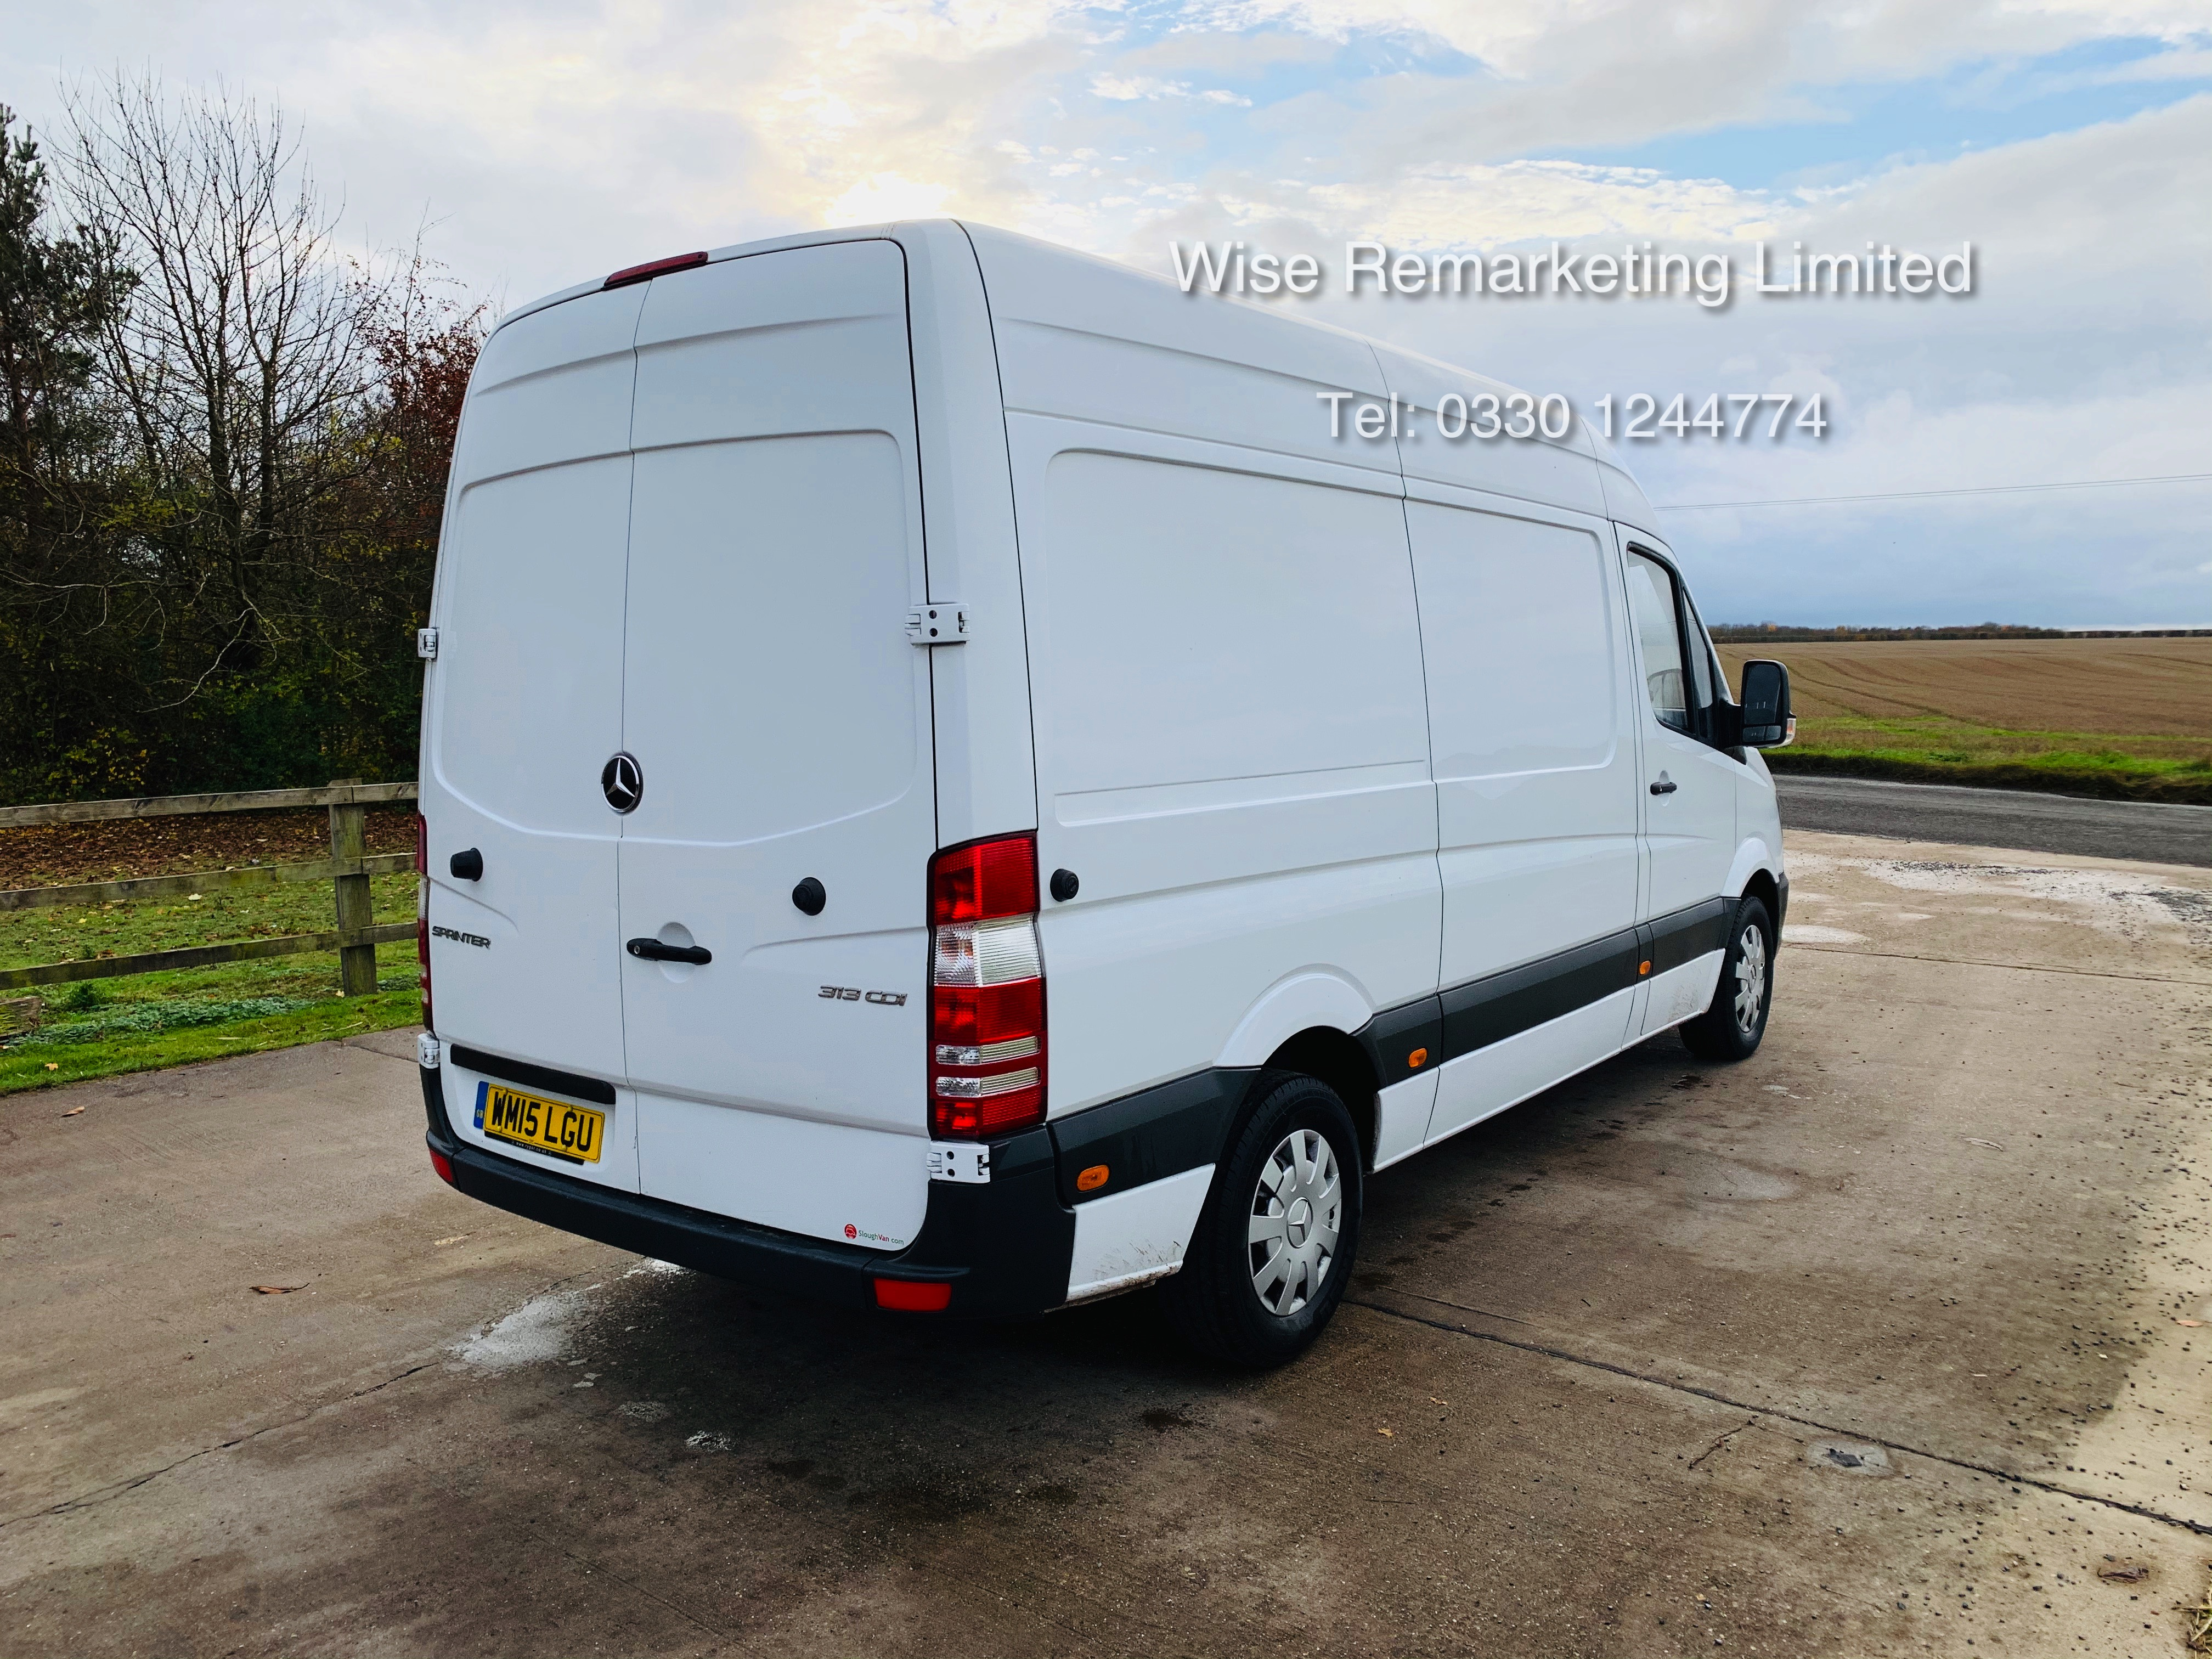 *Reserve Met* Mercedes Sprinter 313 CDI 2.1TD - 2015 15 Reg - Company Maintained - Low Miles - Image 3 of 16